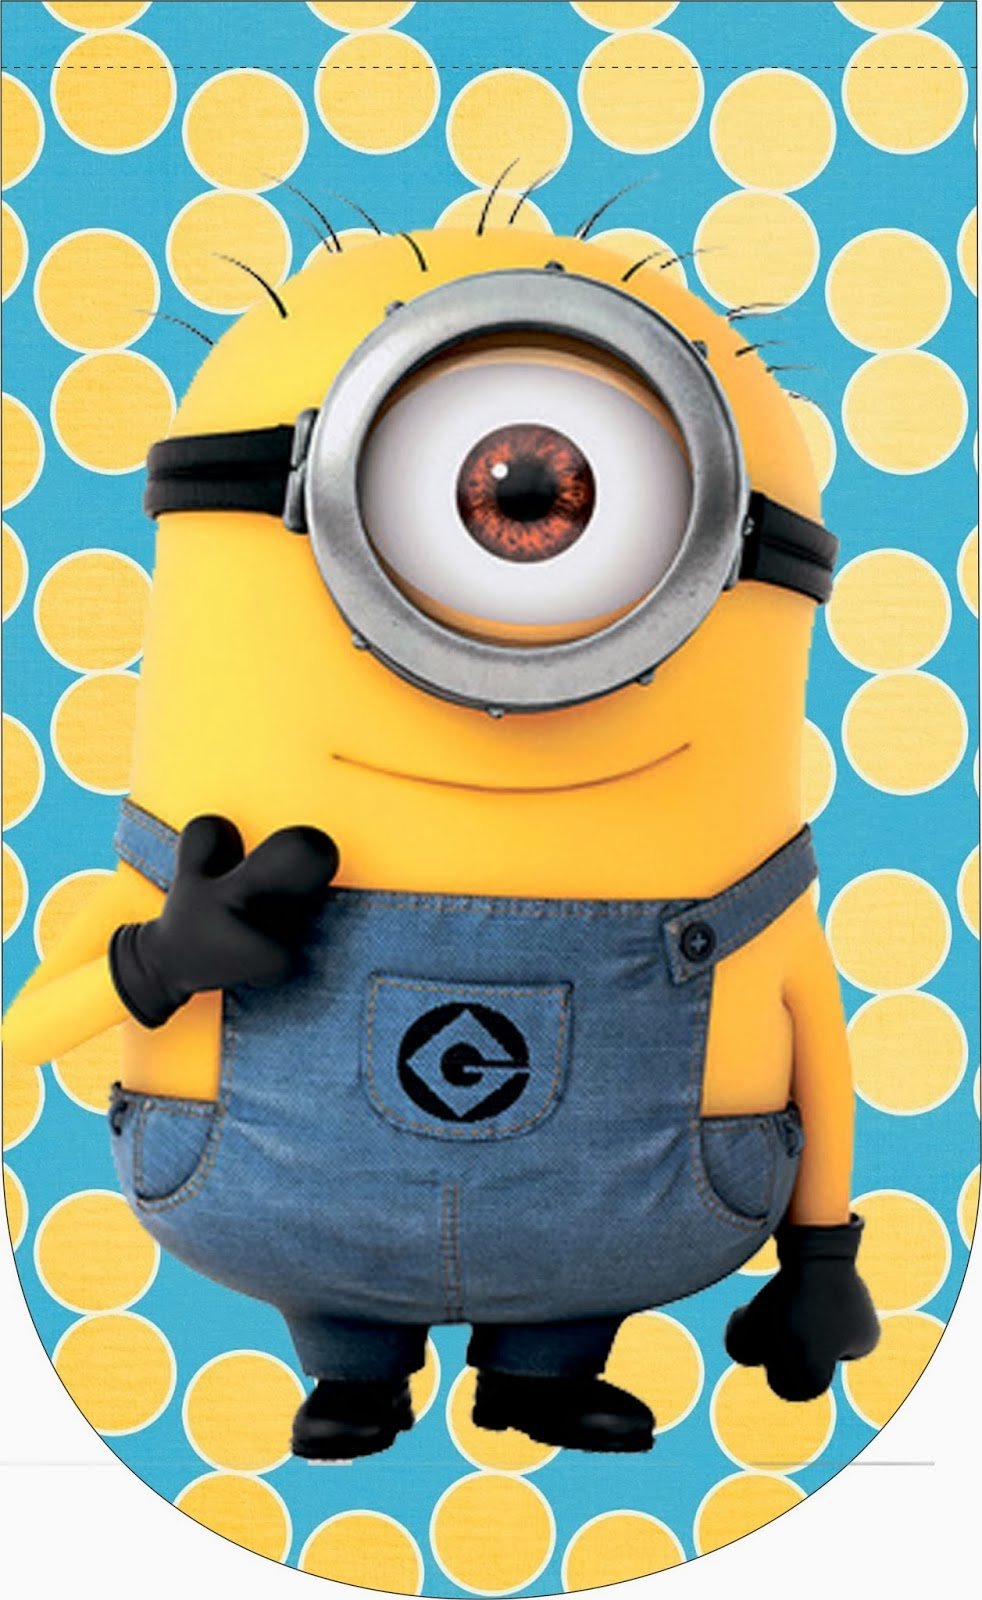 Despicable me 2 free party printables and images oh my - Photo de minion ...